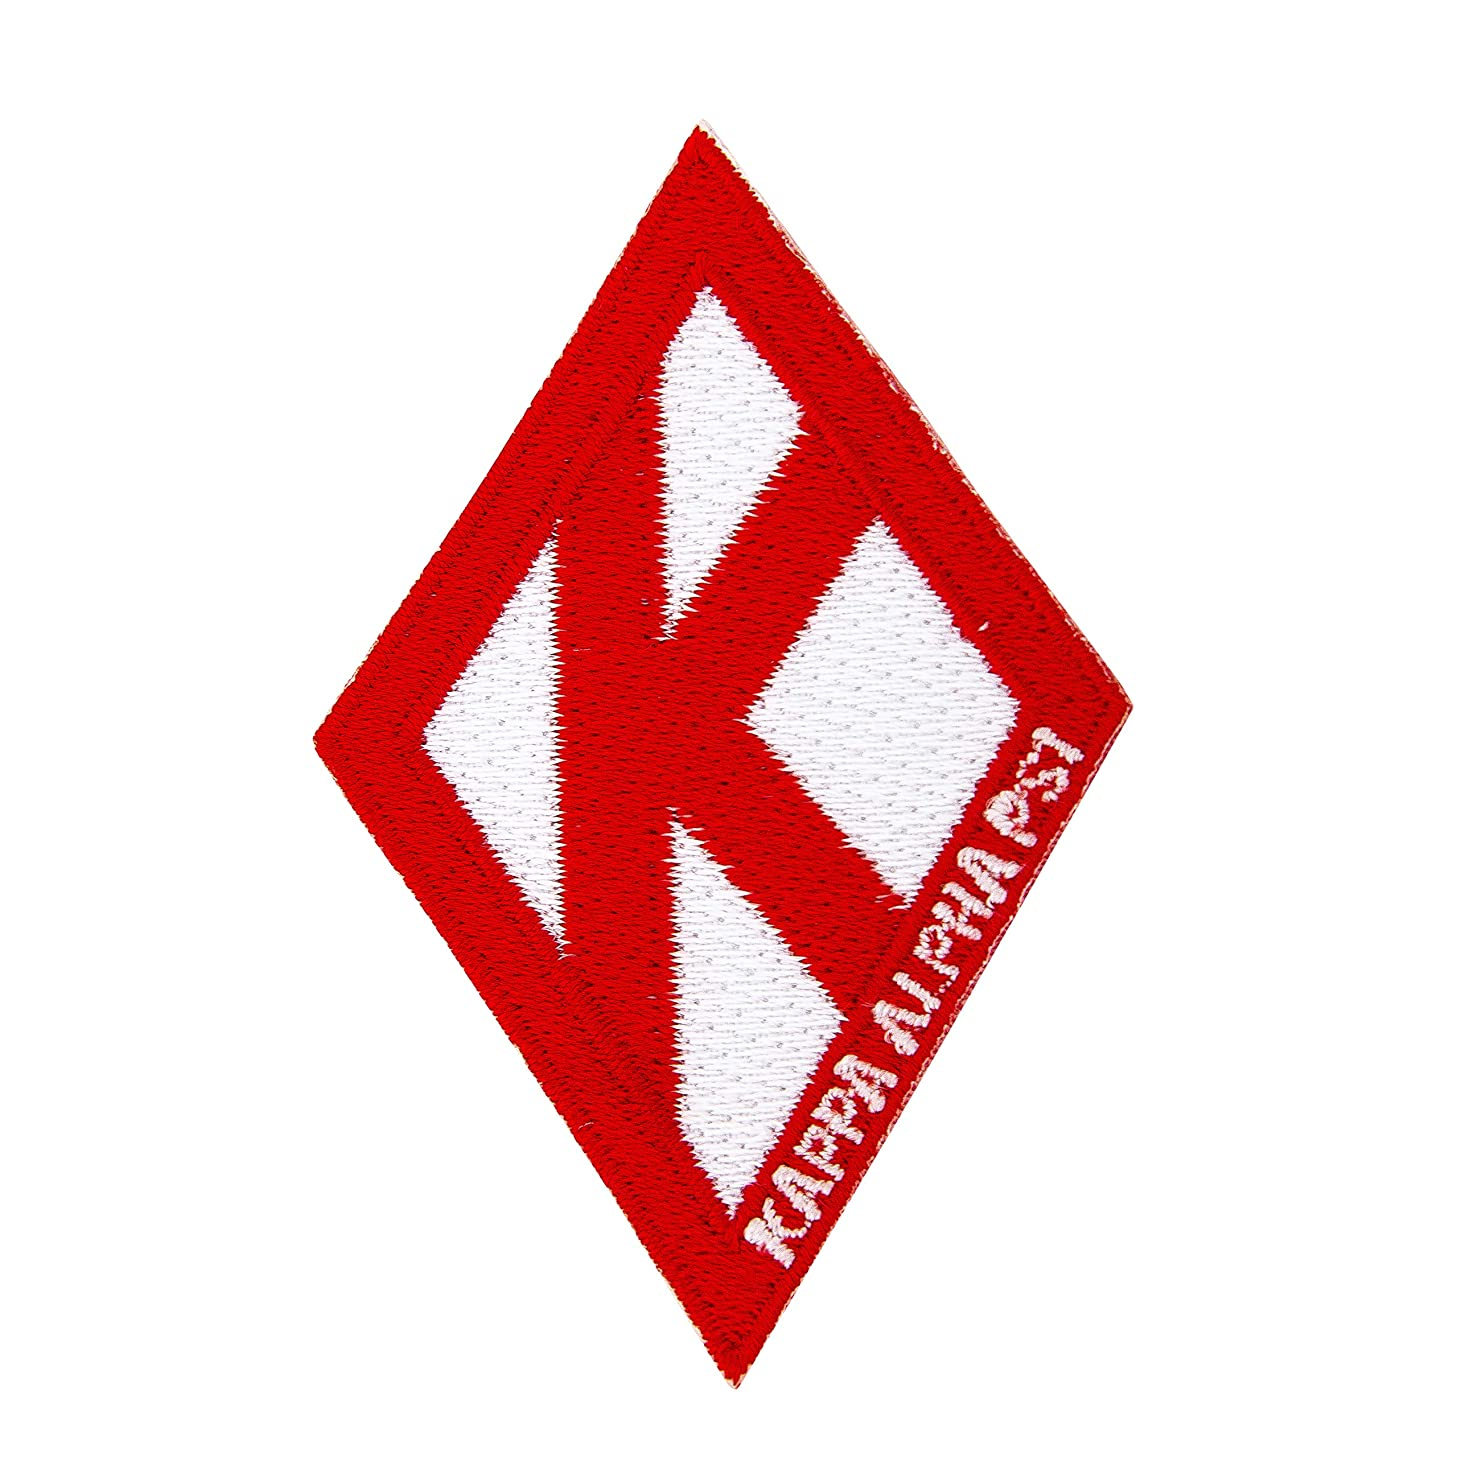 Kappa Alpha Psi Fraternity Diamond w/Group Name Embroidered Appliqué Patch Sew or Iron On Greek Blazer Jacket Bag Nupe (Diamond Group Name Patch)